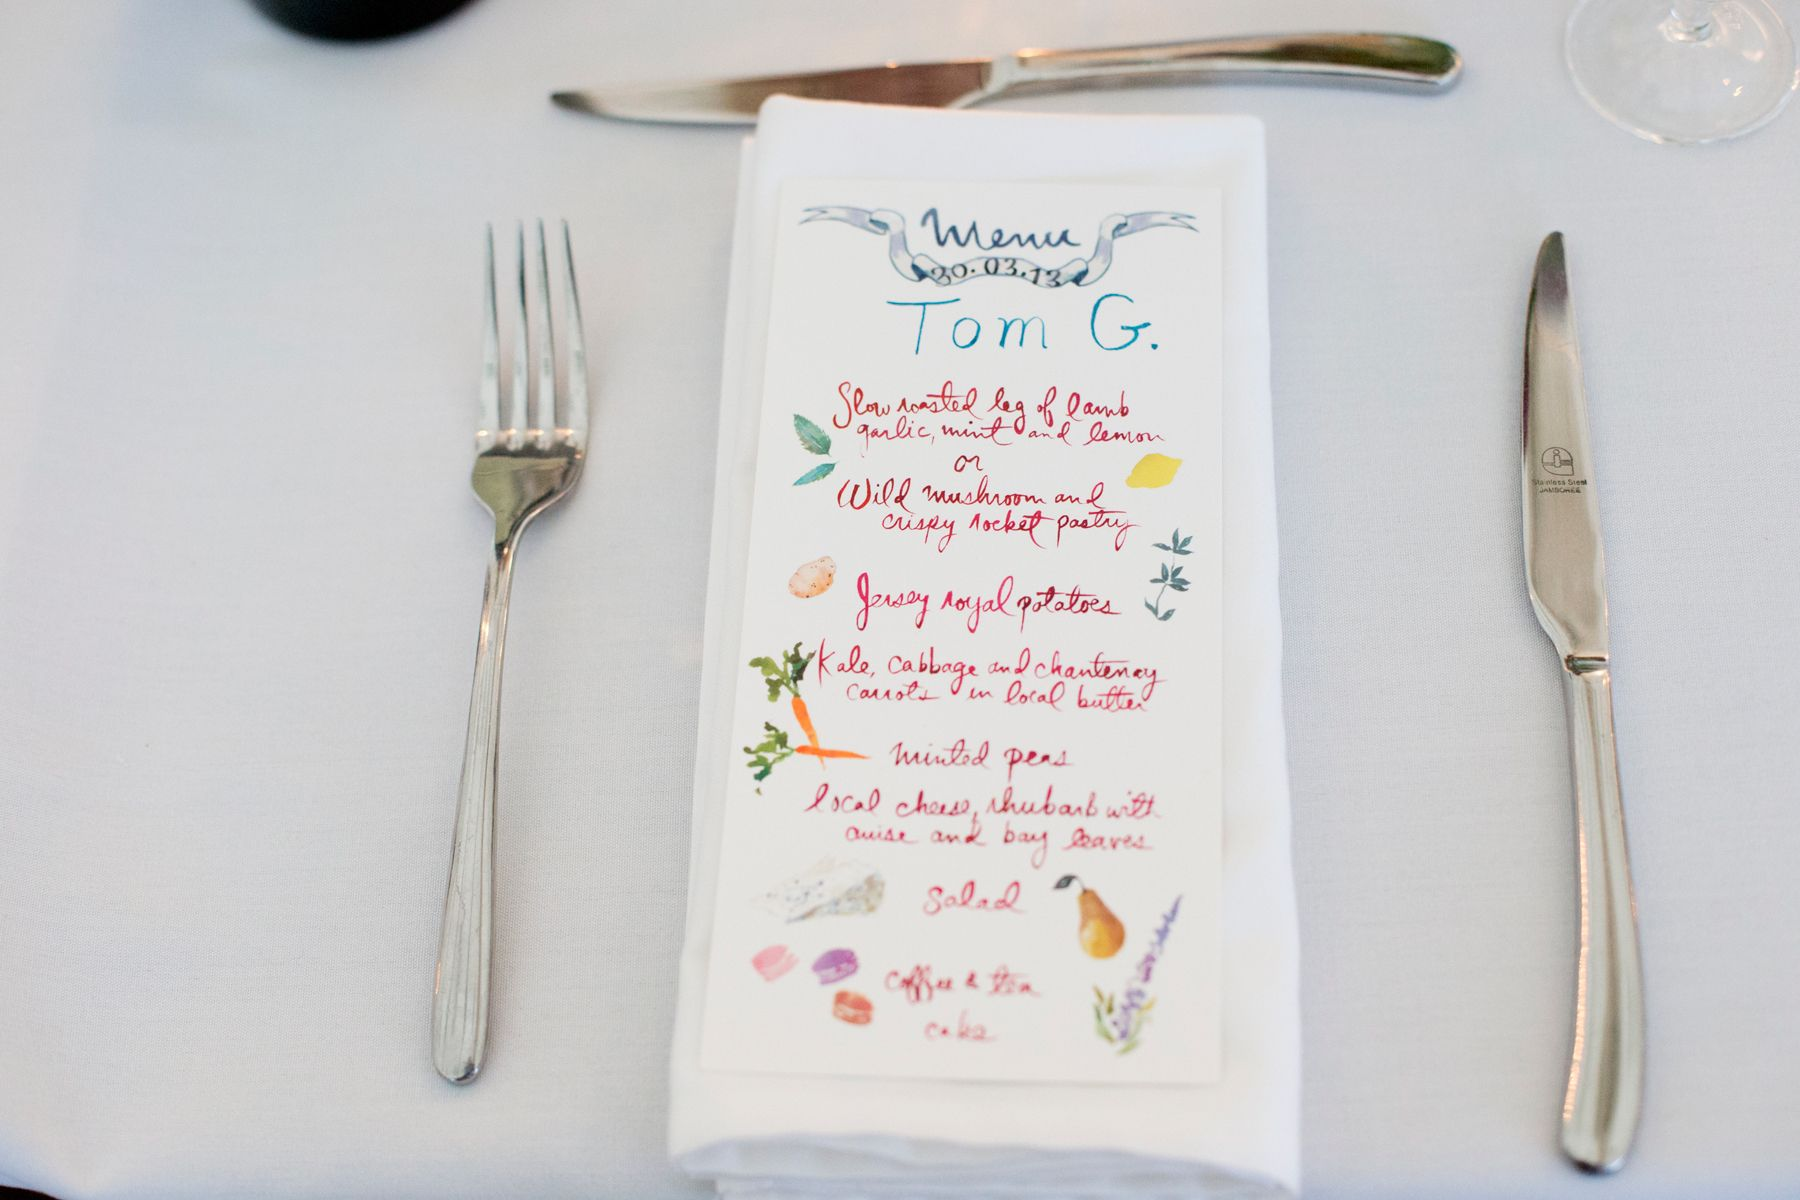 Menus doubled as place cards at dinner the artist happy menocal menus doubled as place cards at dinner the artist happy menocal who created our stopboris Gallery